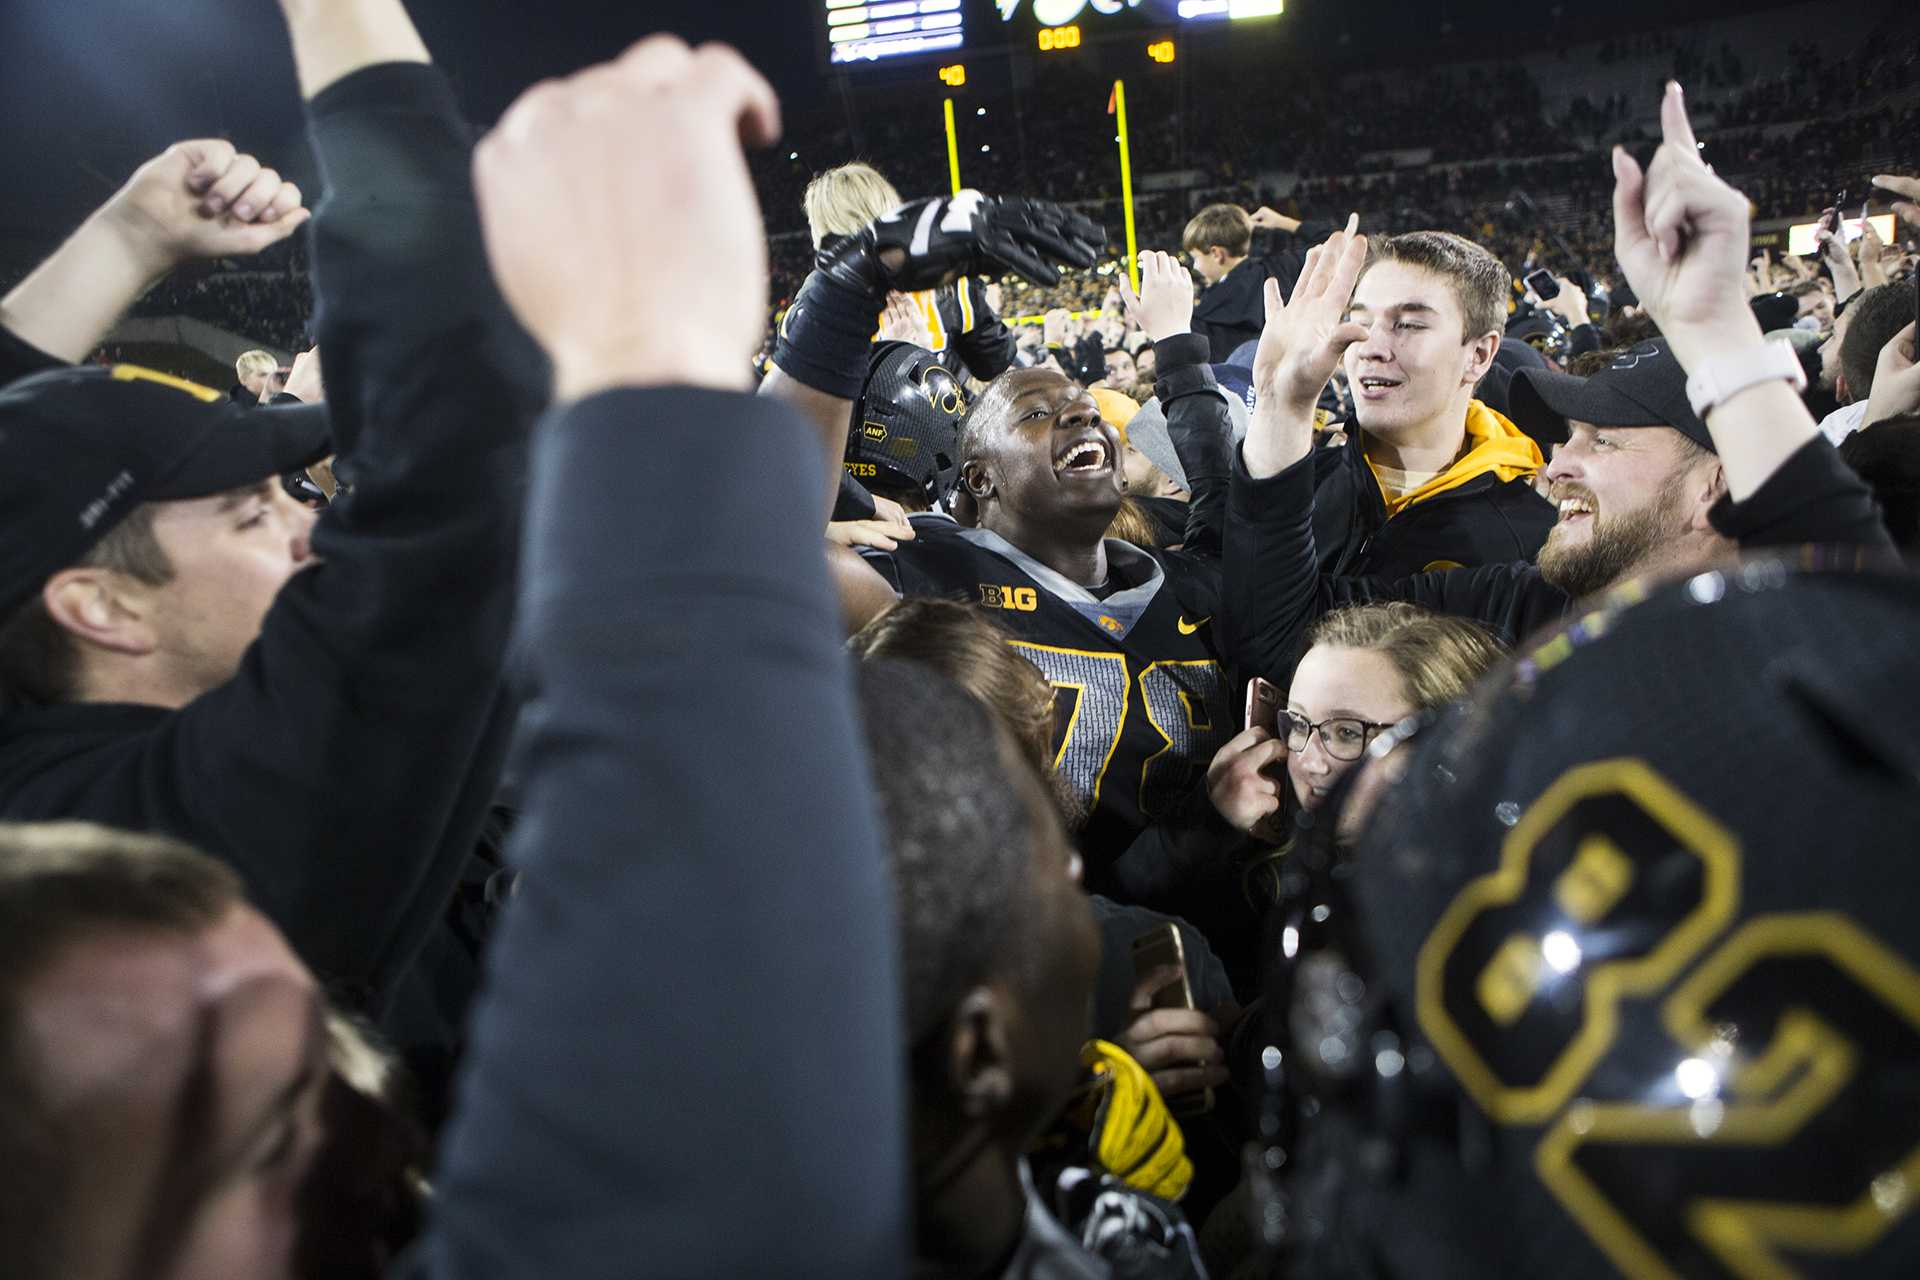 Fans celebrate with Iowa offensive linemen James Daniels while storming the field during the Iowa/Ohio State football game in Kinnick Stadium on Saturday, Nov. 4, 2017. The Hawkeyes defeated the Buckeyes in a storming fashion, 55-24. (Joseph Cress/The Daily Iowan)